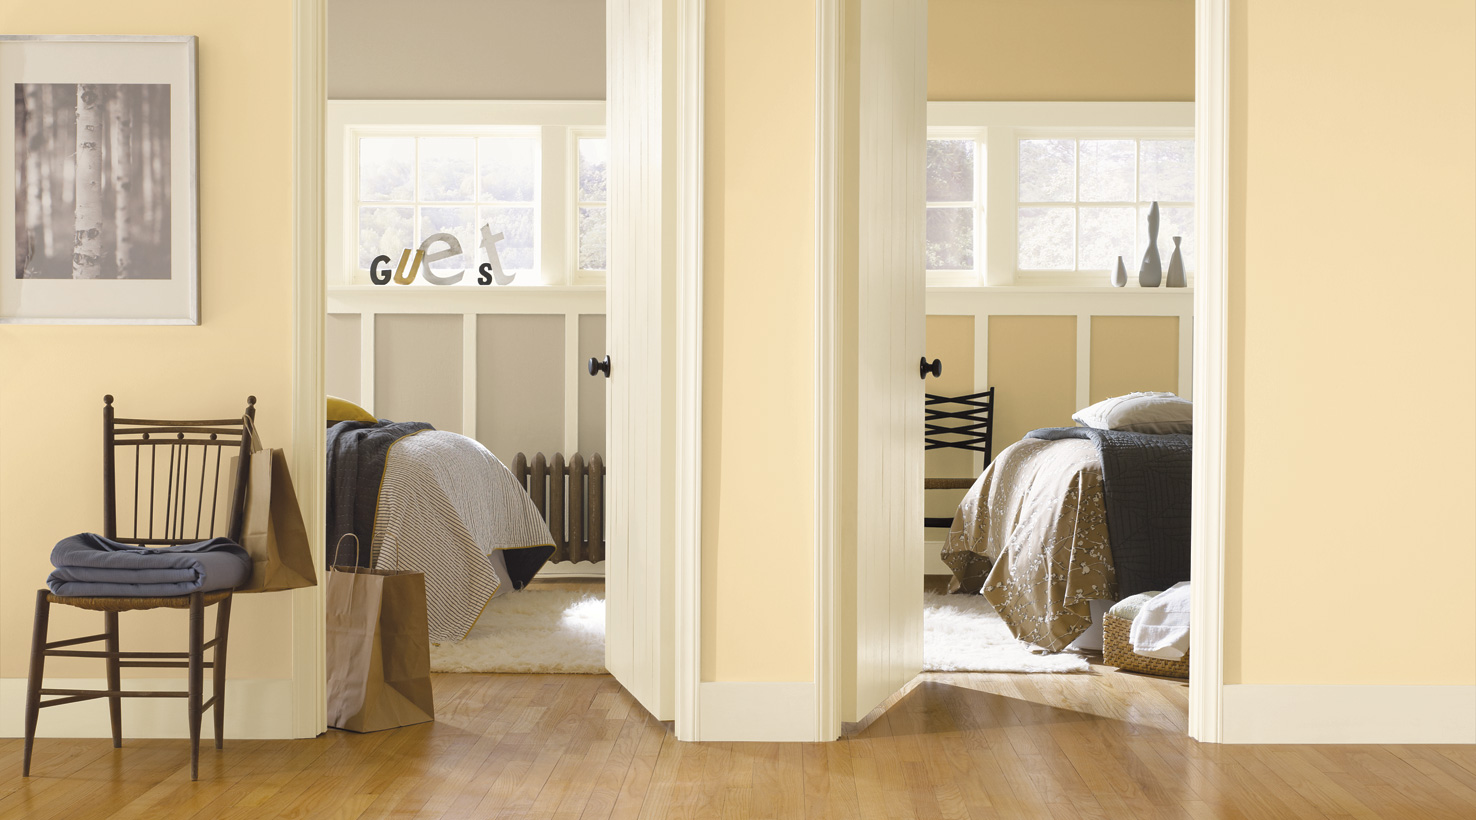 Bedroom Paint Color Ideas   Inspiration Gallery   Sherwin Williams     Bedroom   Neutrals